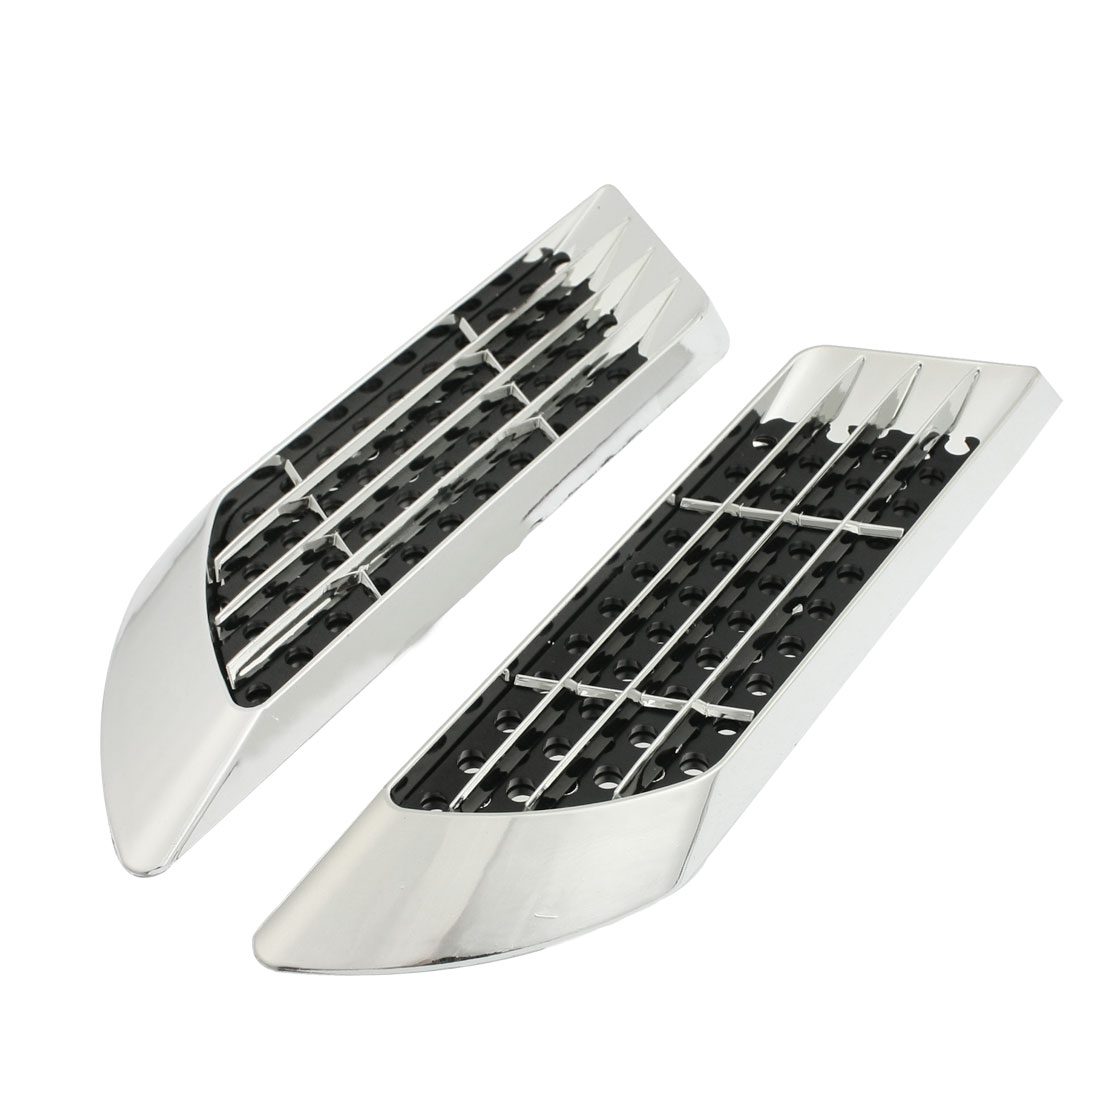 Perforated Car Side Vent Air Flow Fender Sticker Decor Silver Tone 2 Pcs